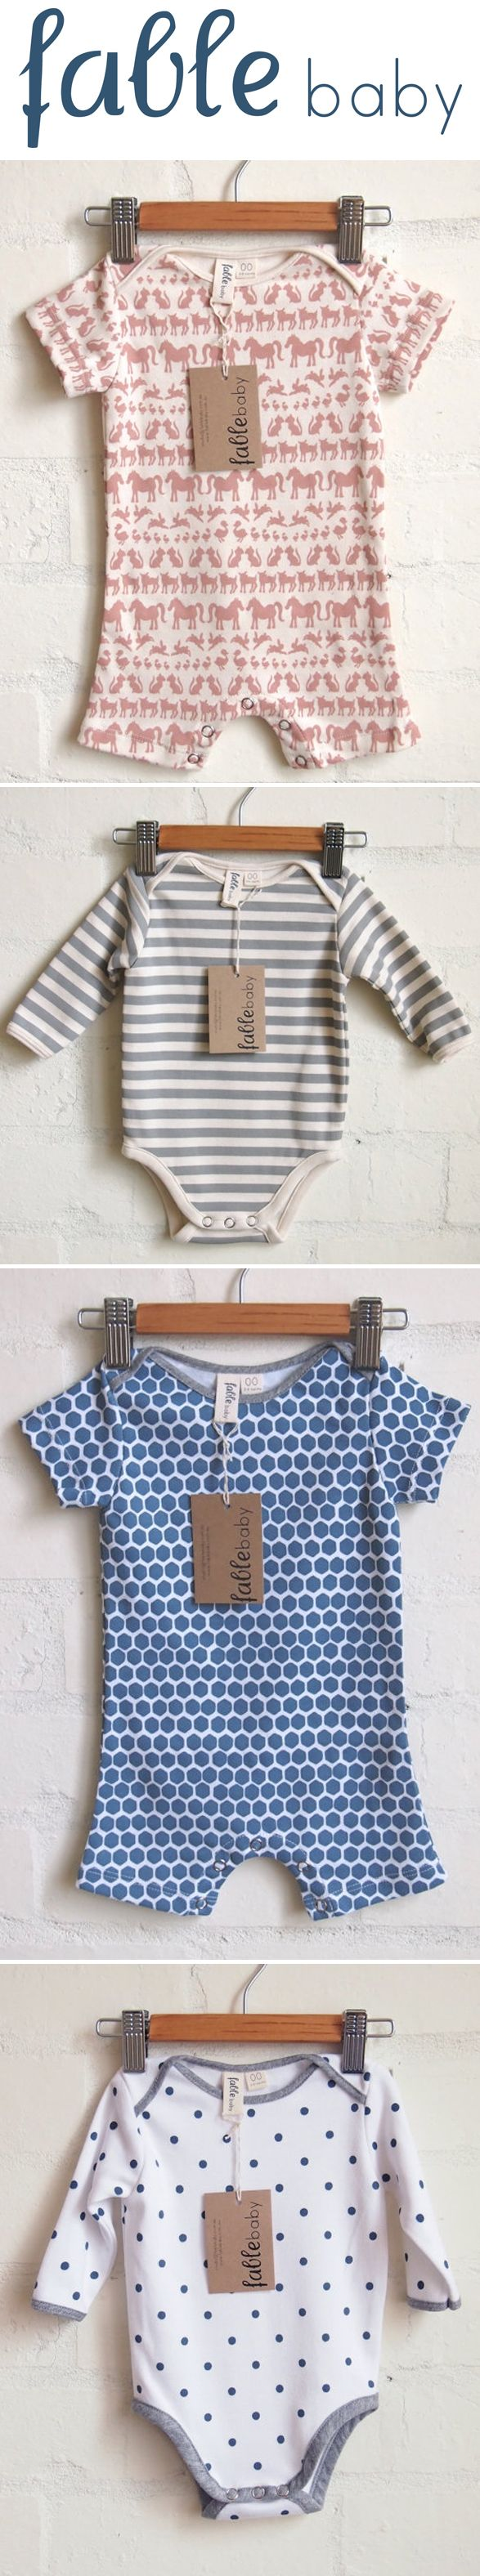 Cutest baby clothes from Fable Baby. #babyclothes